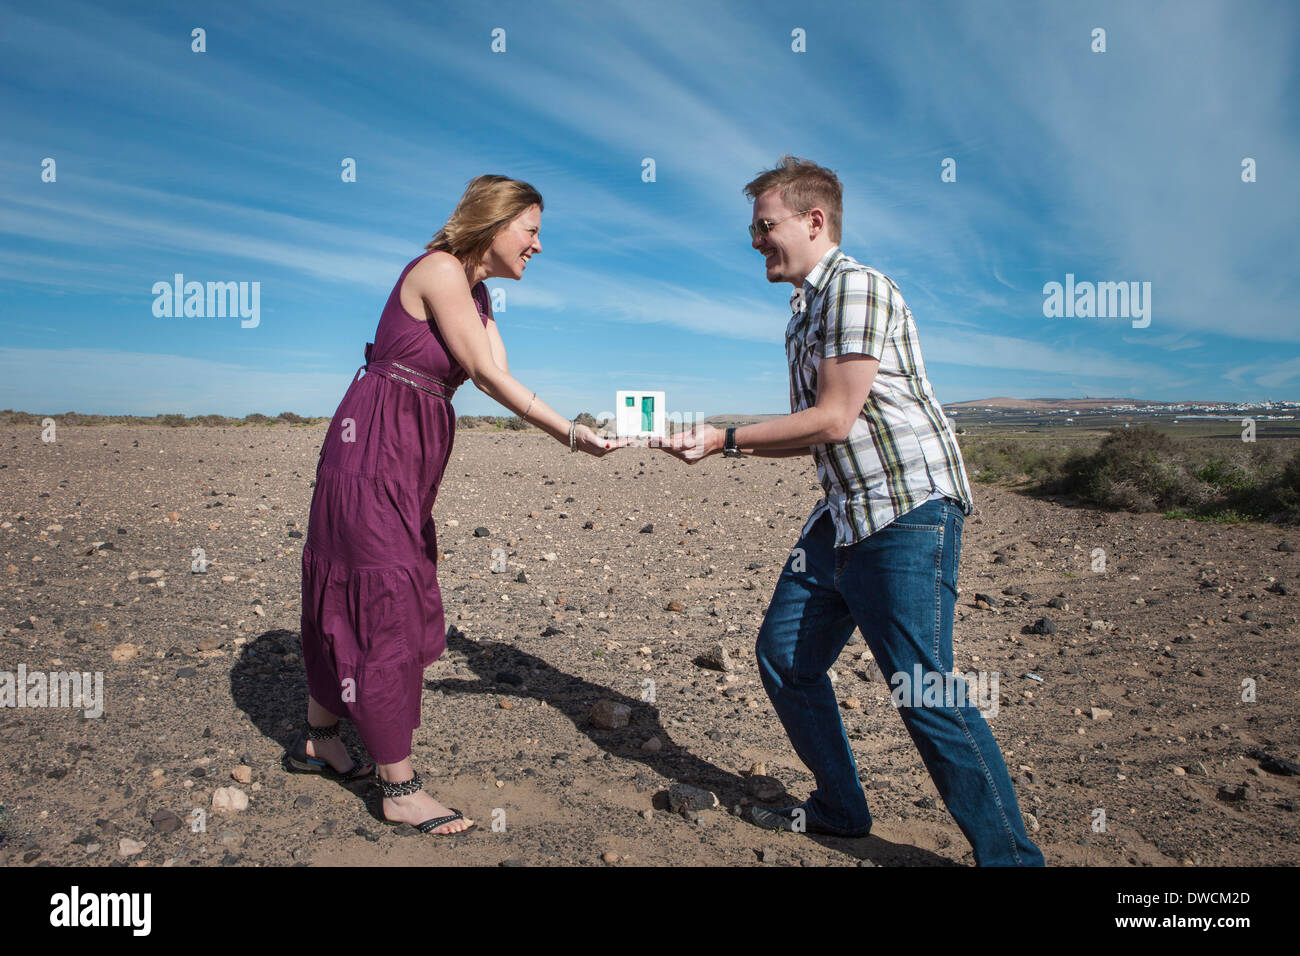 Couple acting out tradition - Stock Image